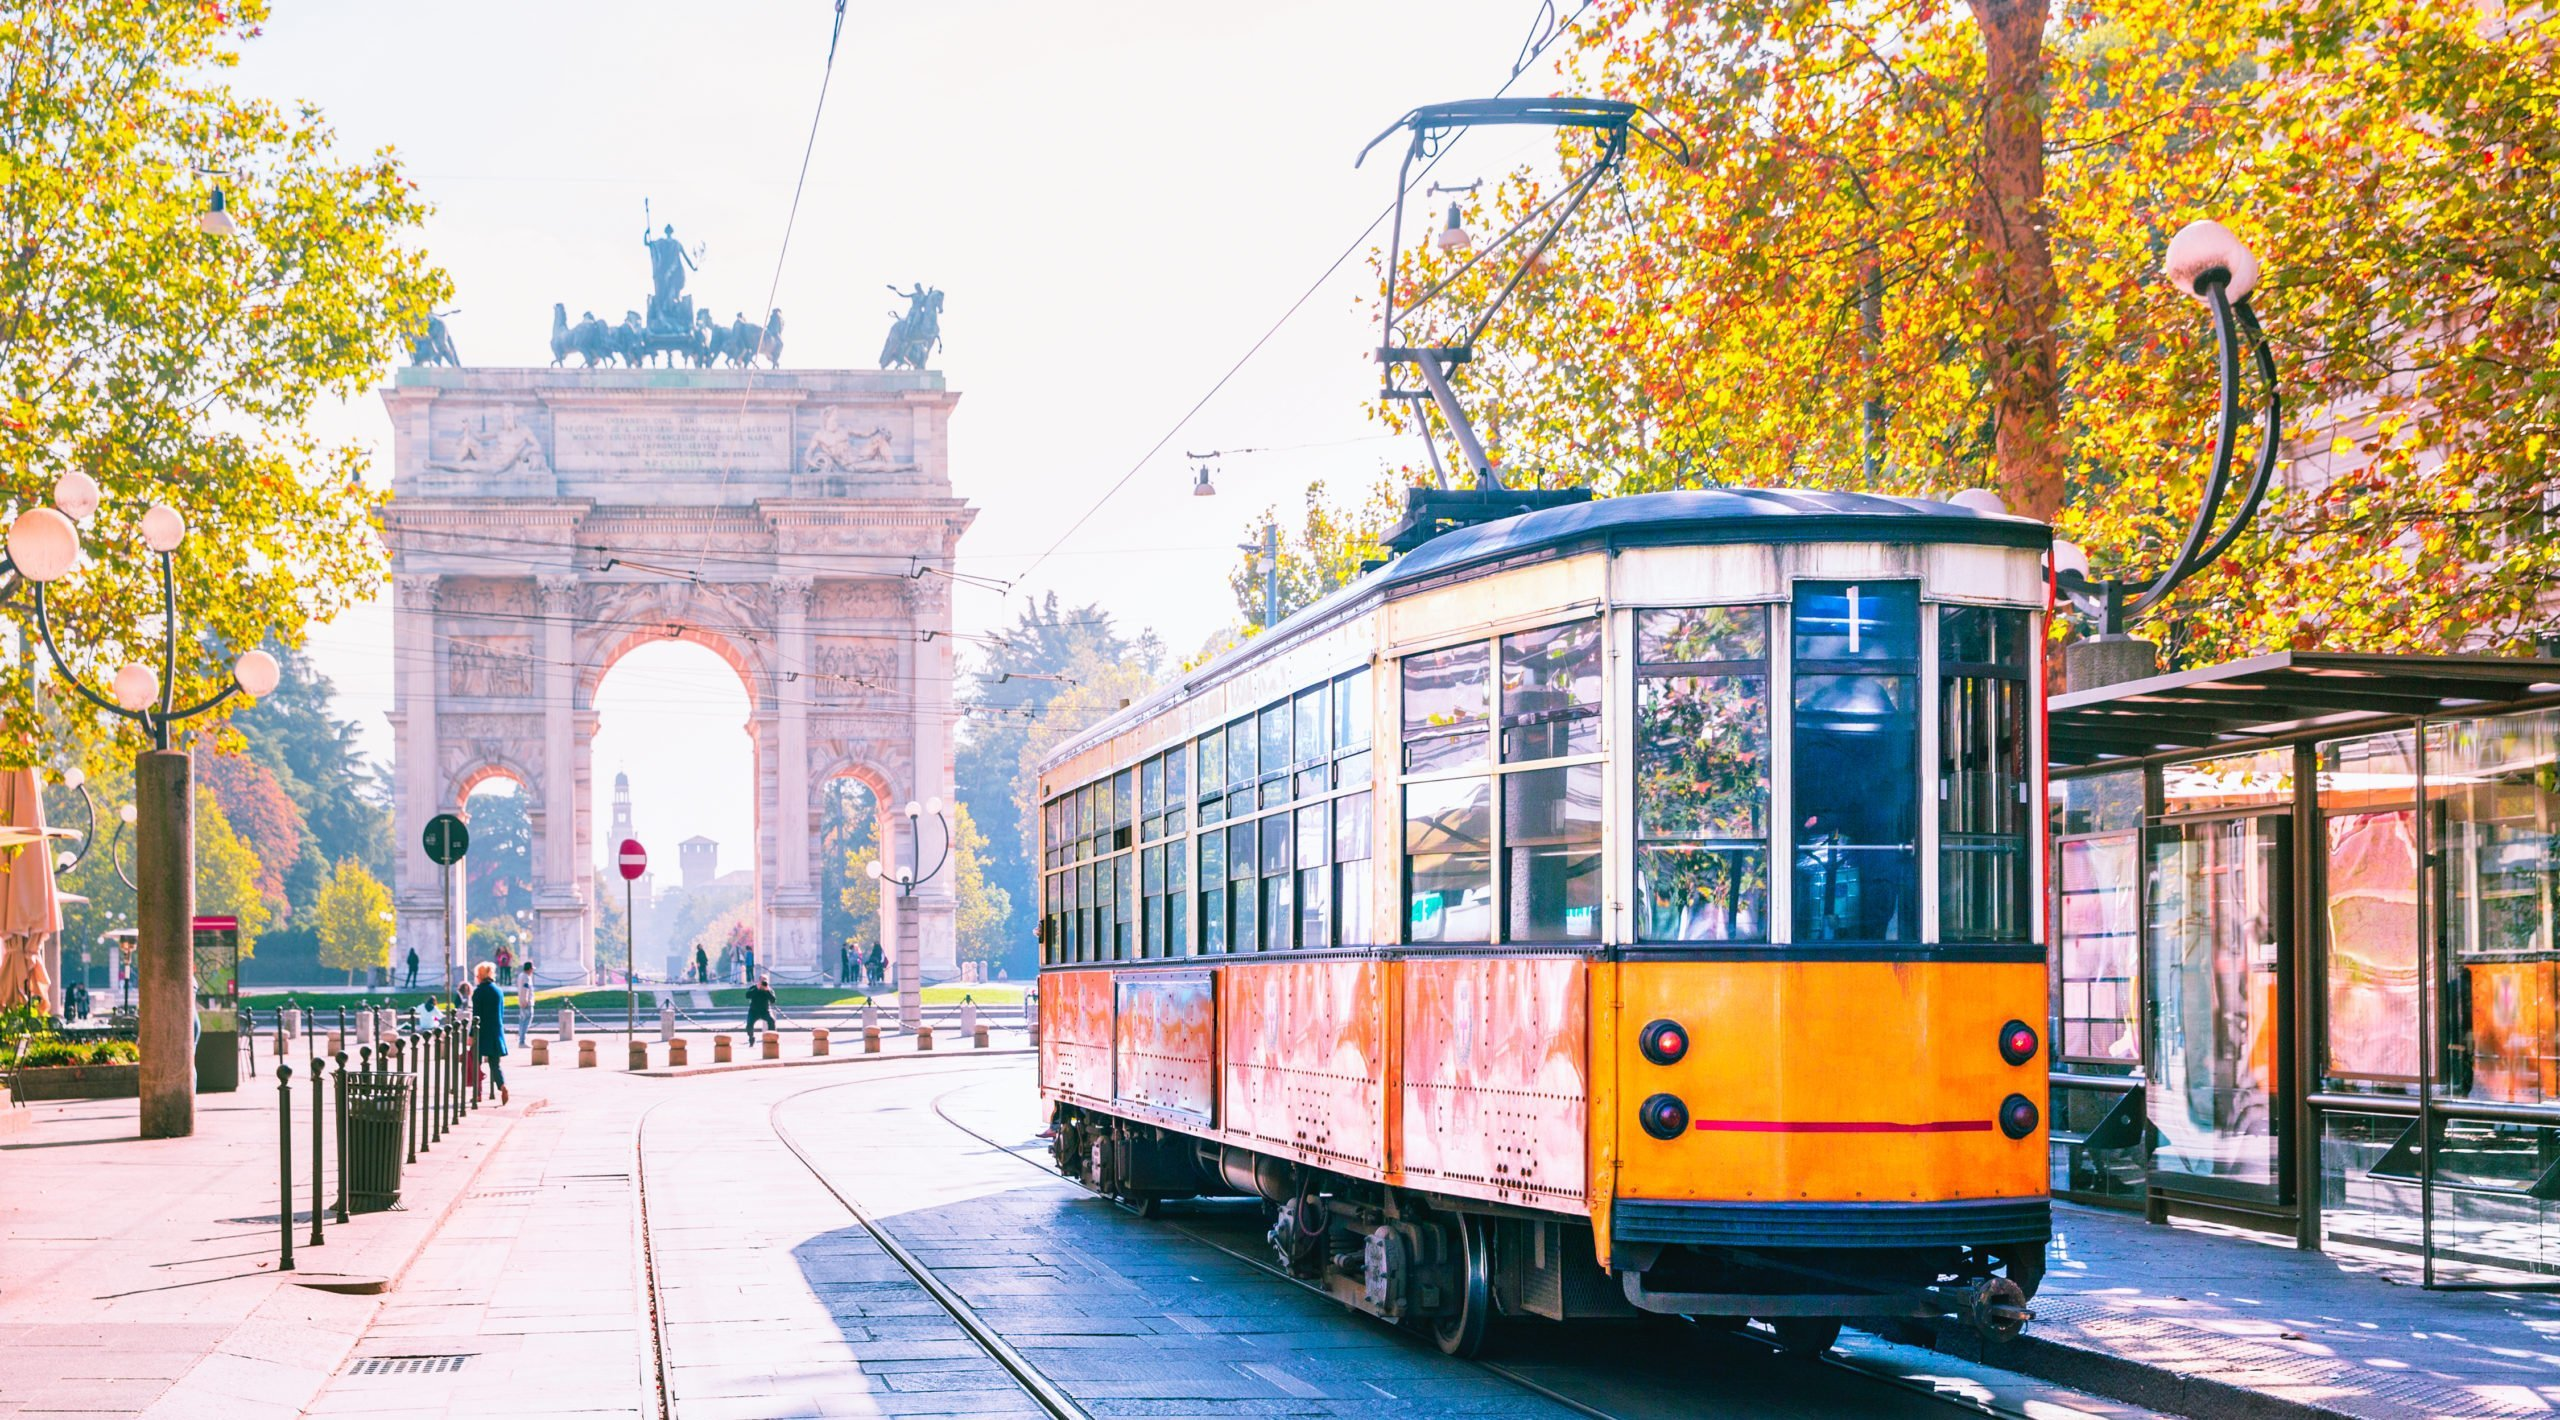 Discover The Beautiful City Of Milan On The Insider Milan City Tour